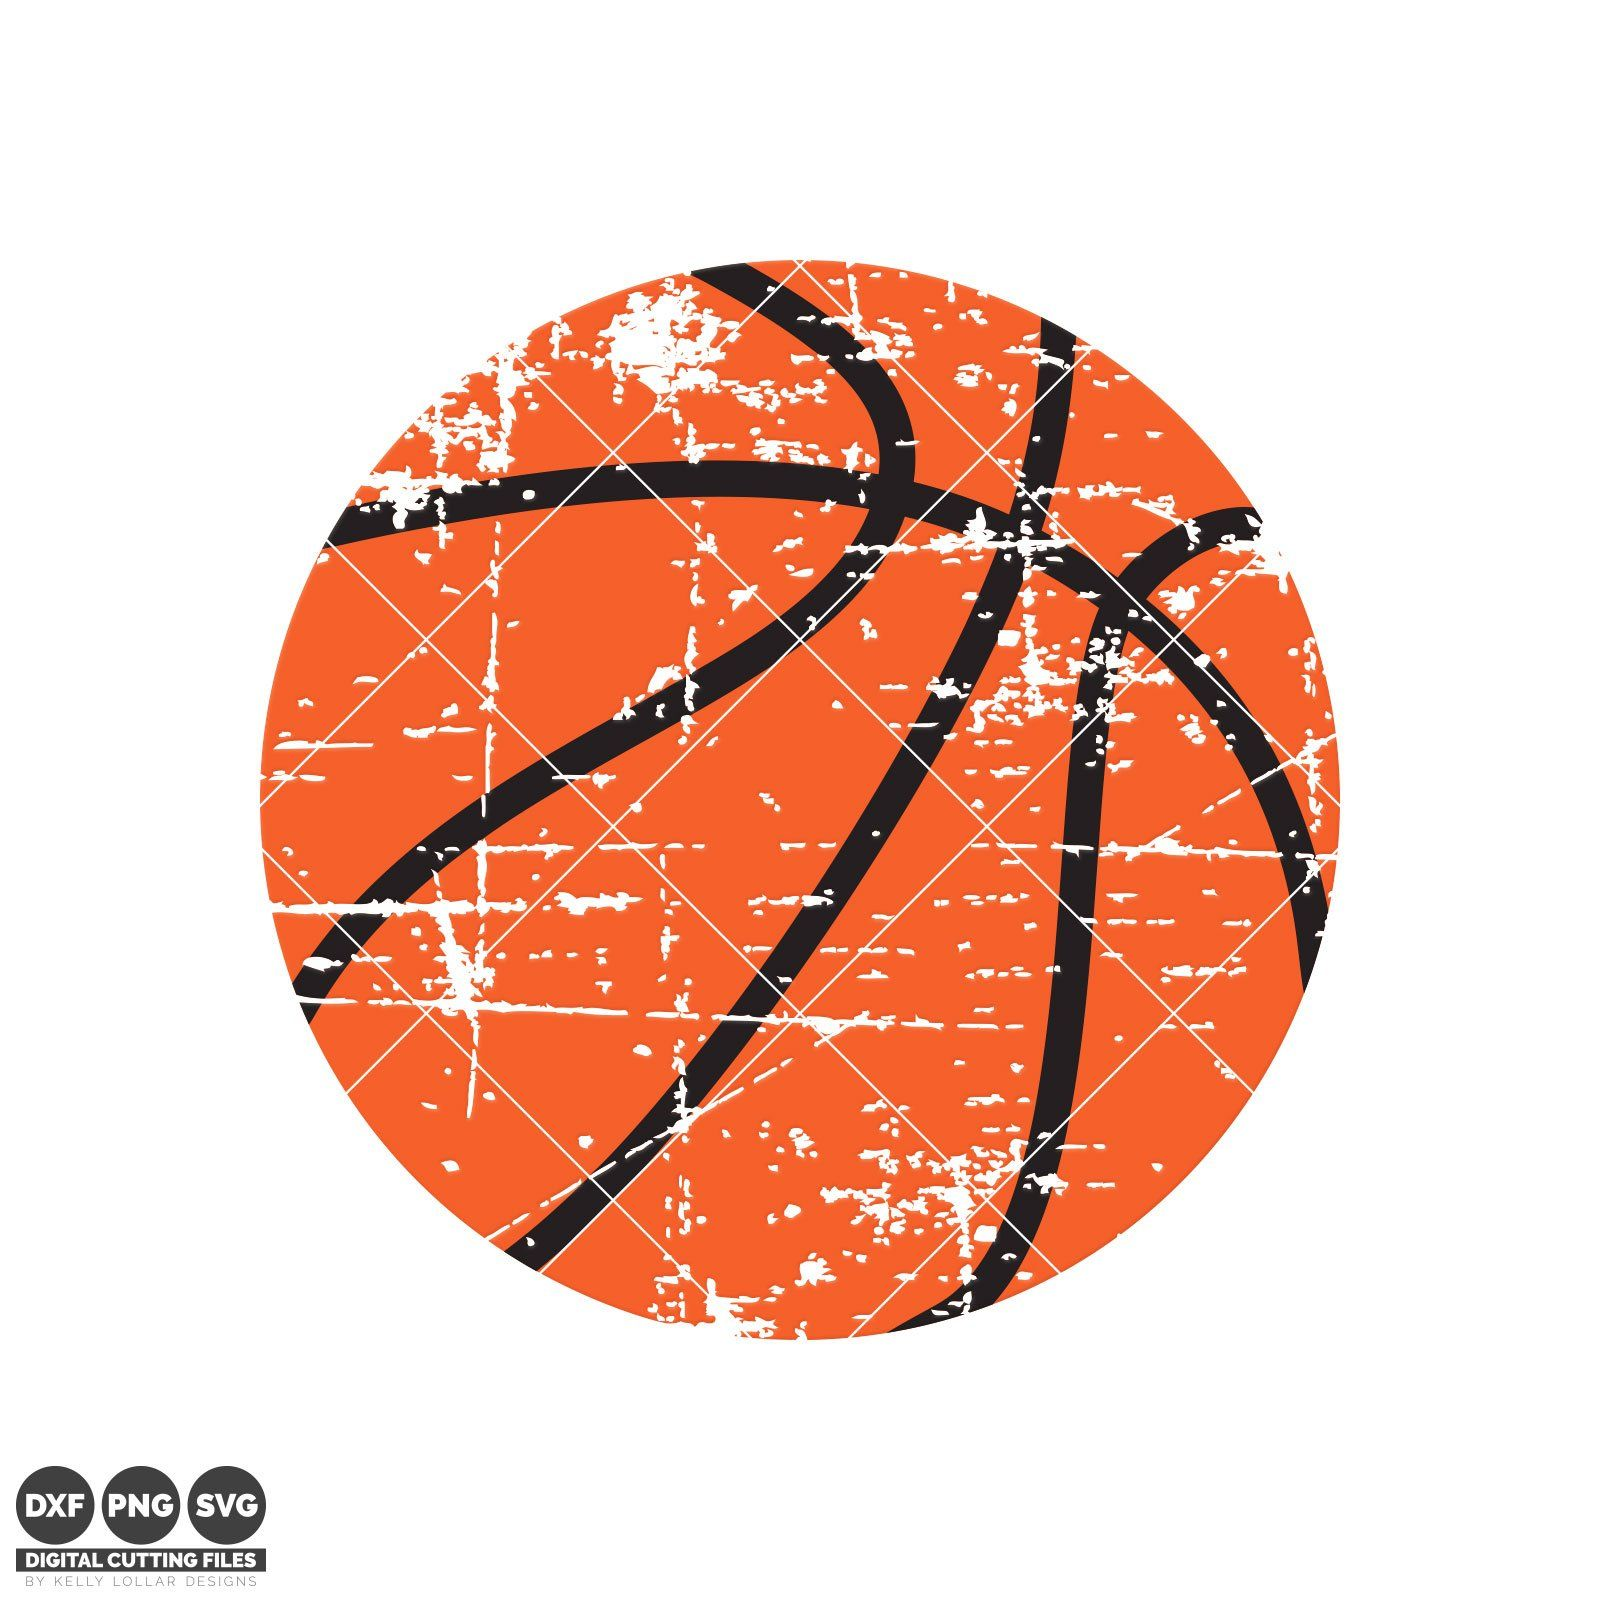 Distressed Basketball svg file perfect for a retro vibe t